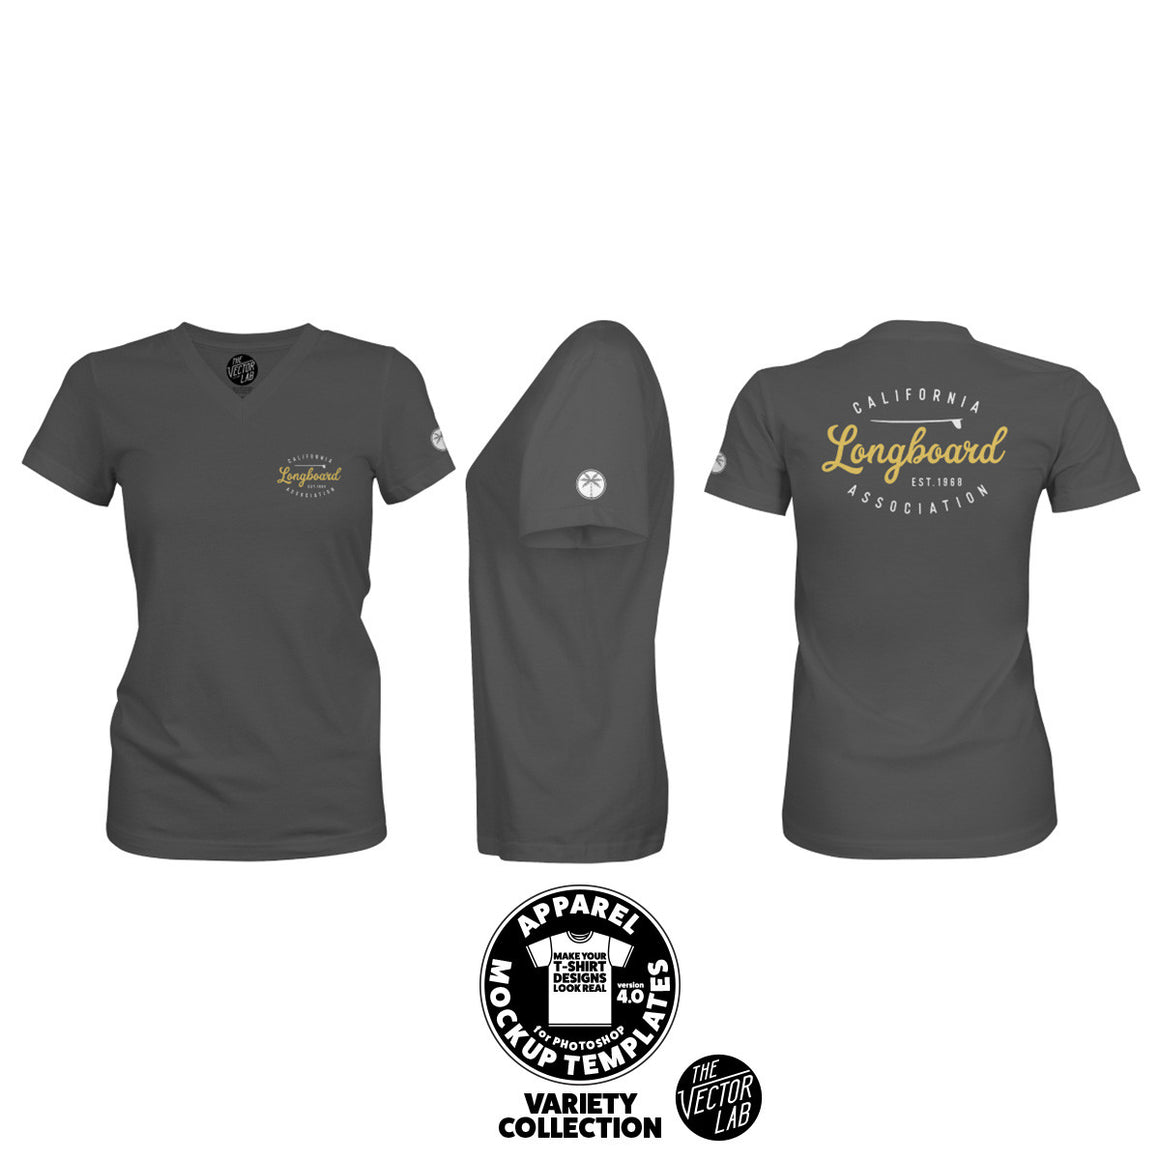 Women's V-Neck T-Shirt Mockup Templates for Photoshop